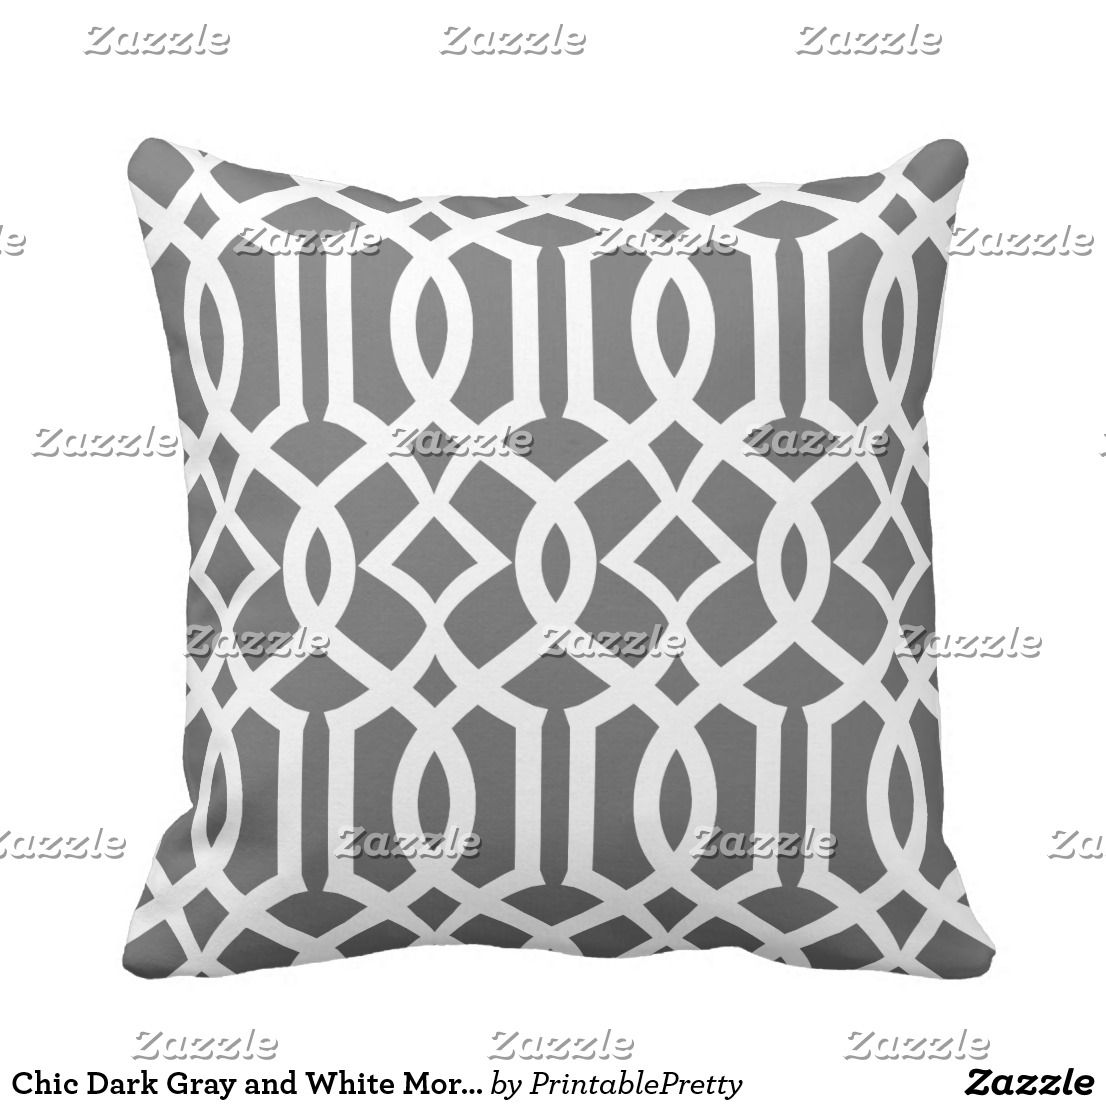 Chic Dark Gray And White Moroccan Trellis Pattern Throw Pillow Zazzle Com In 2020 Patterned Throw Pillows Pillows Moroccan Trellis Pattern